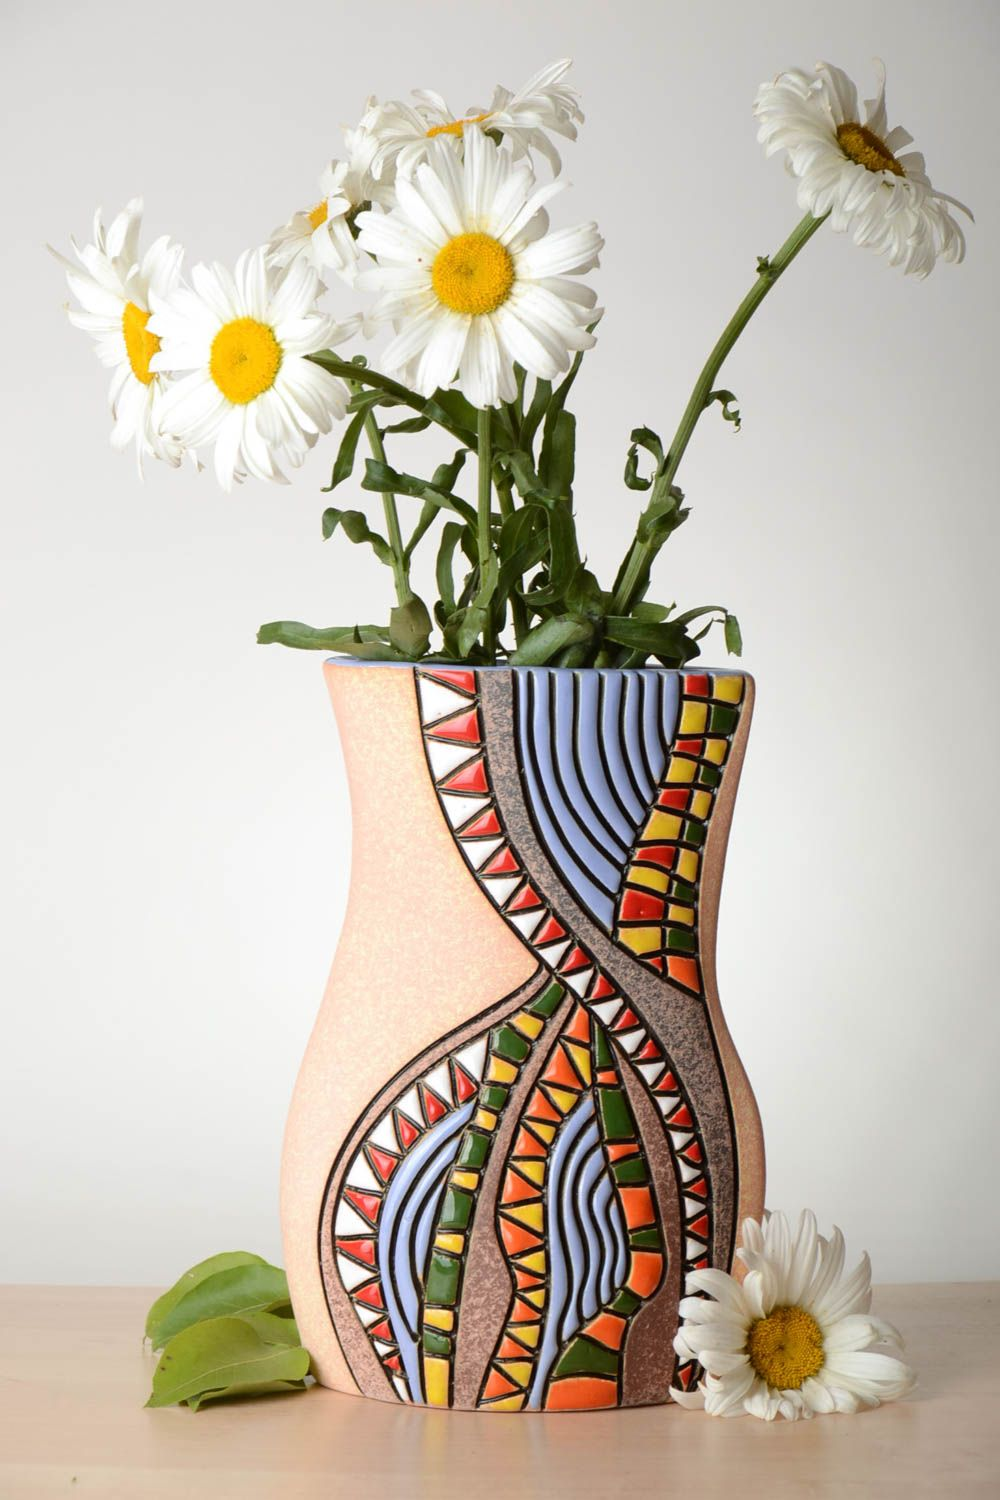 Made.com Flower Vase Designs Images on flower horse design, artificial flower design, flower moon design, flower vases with flowers, flower lion design, flower teapot design, bouquet of flowers design, flower red design, flower cross design, reptile tank design, flower mug design, flower decal design, wood flower design, flower border design, cylinder vases design, flower rope design, ecological home design, flower dish design, flower tumbler design, flower pen design,